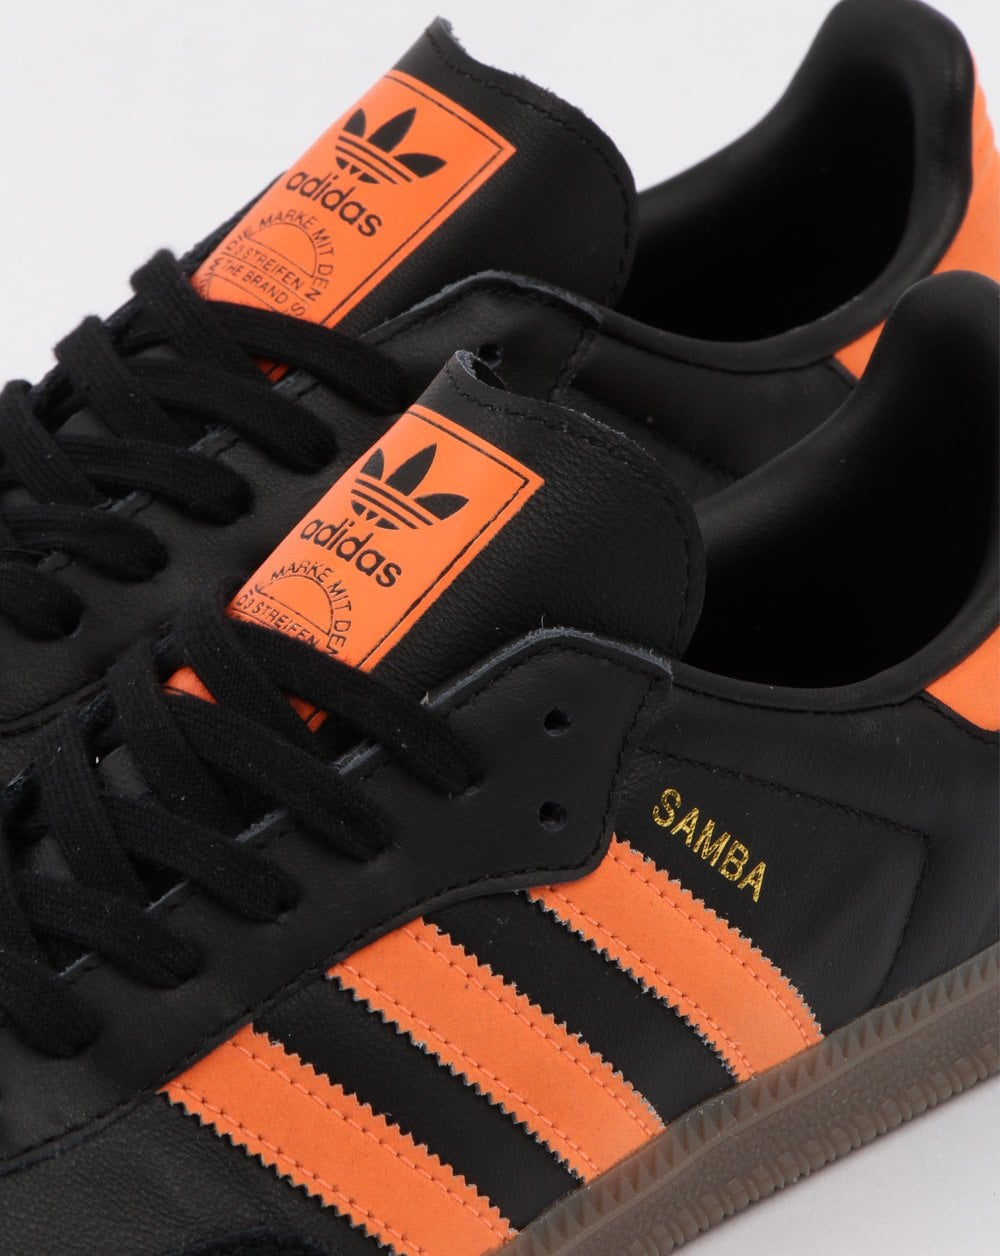 Adidas Samba Og Trainers Black  Orange 8cb59f386